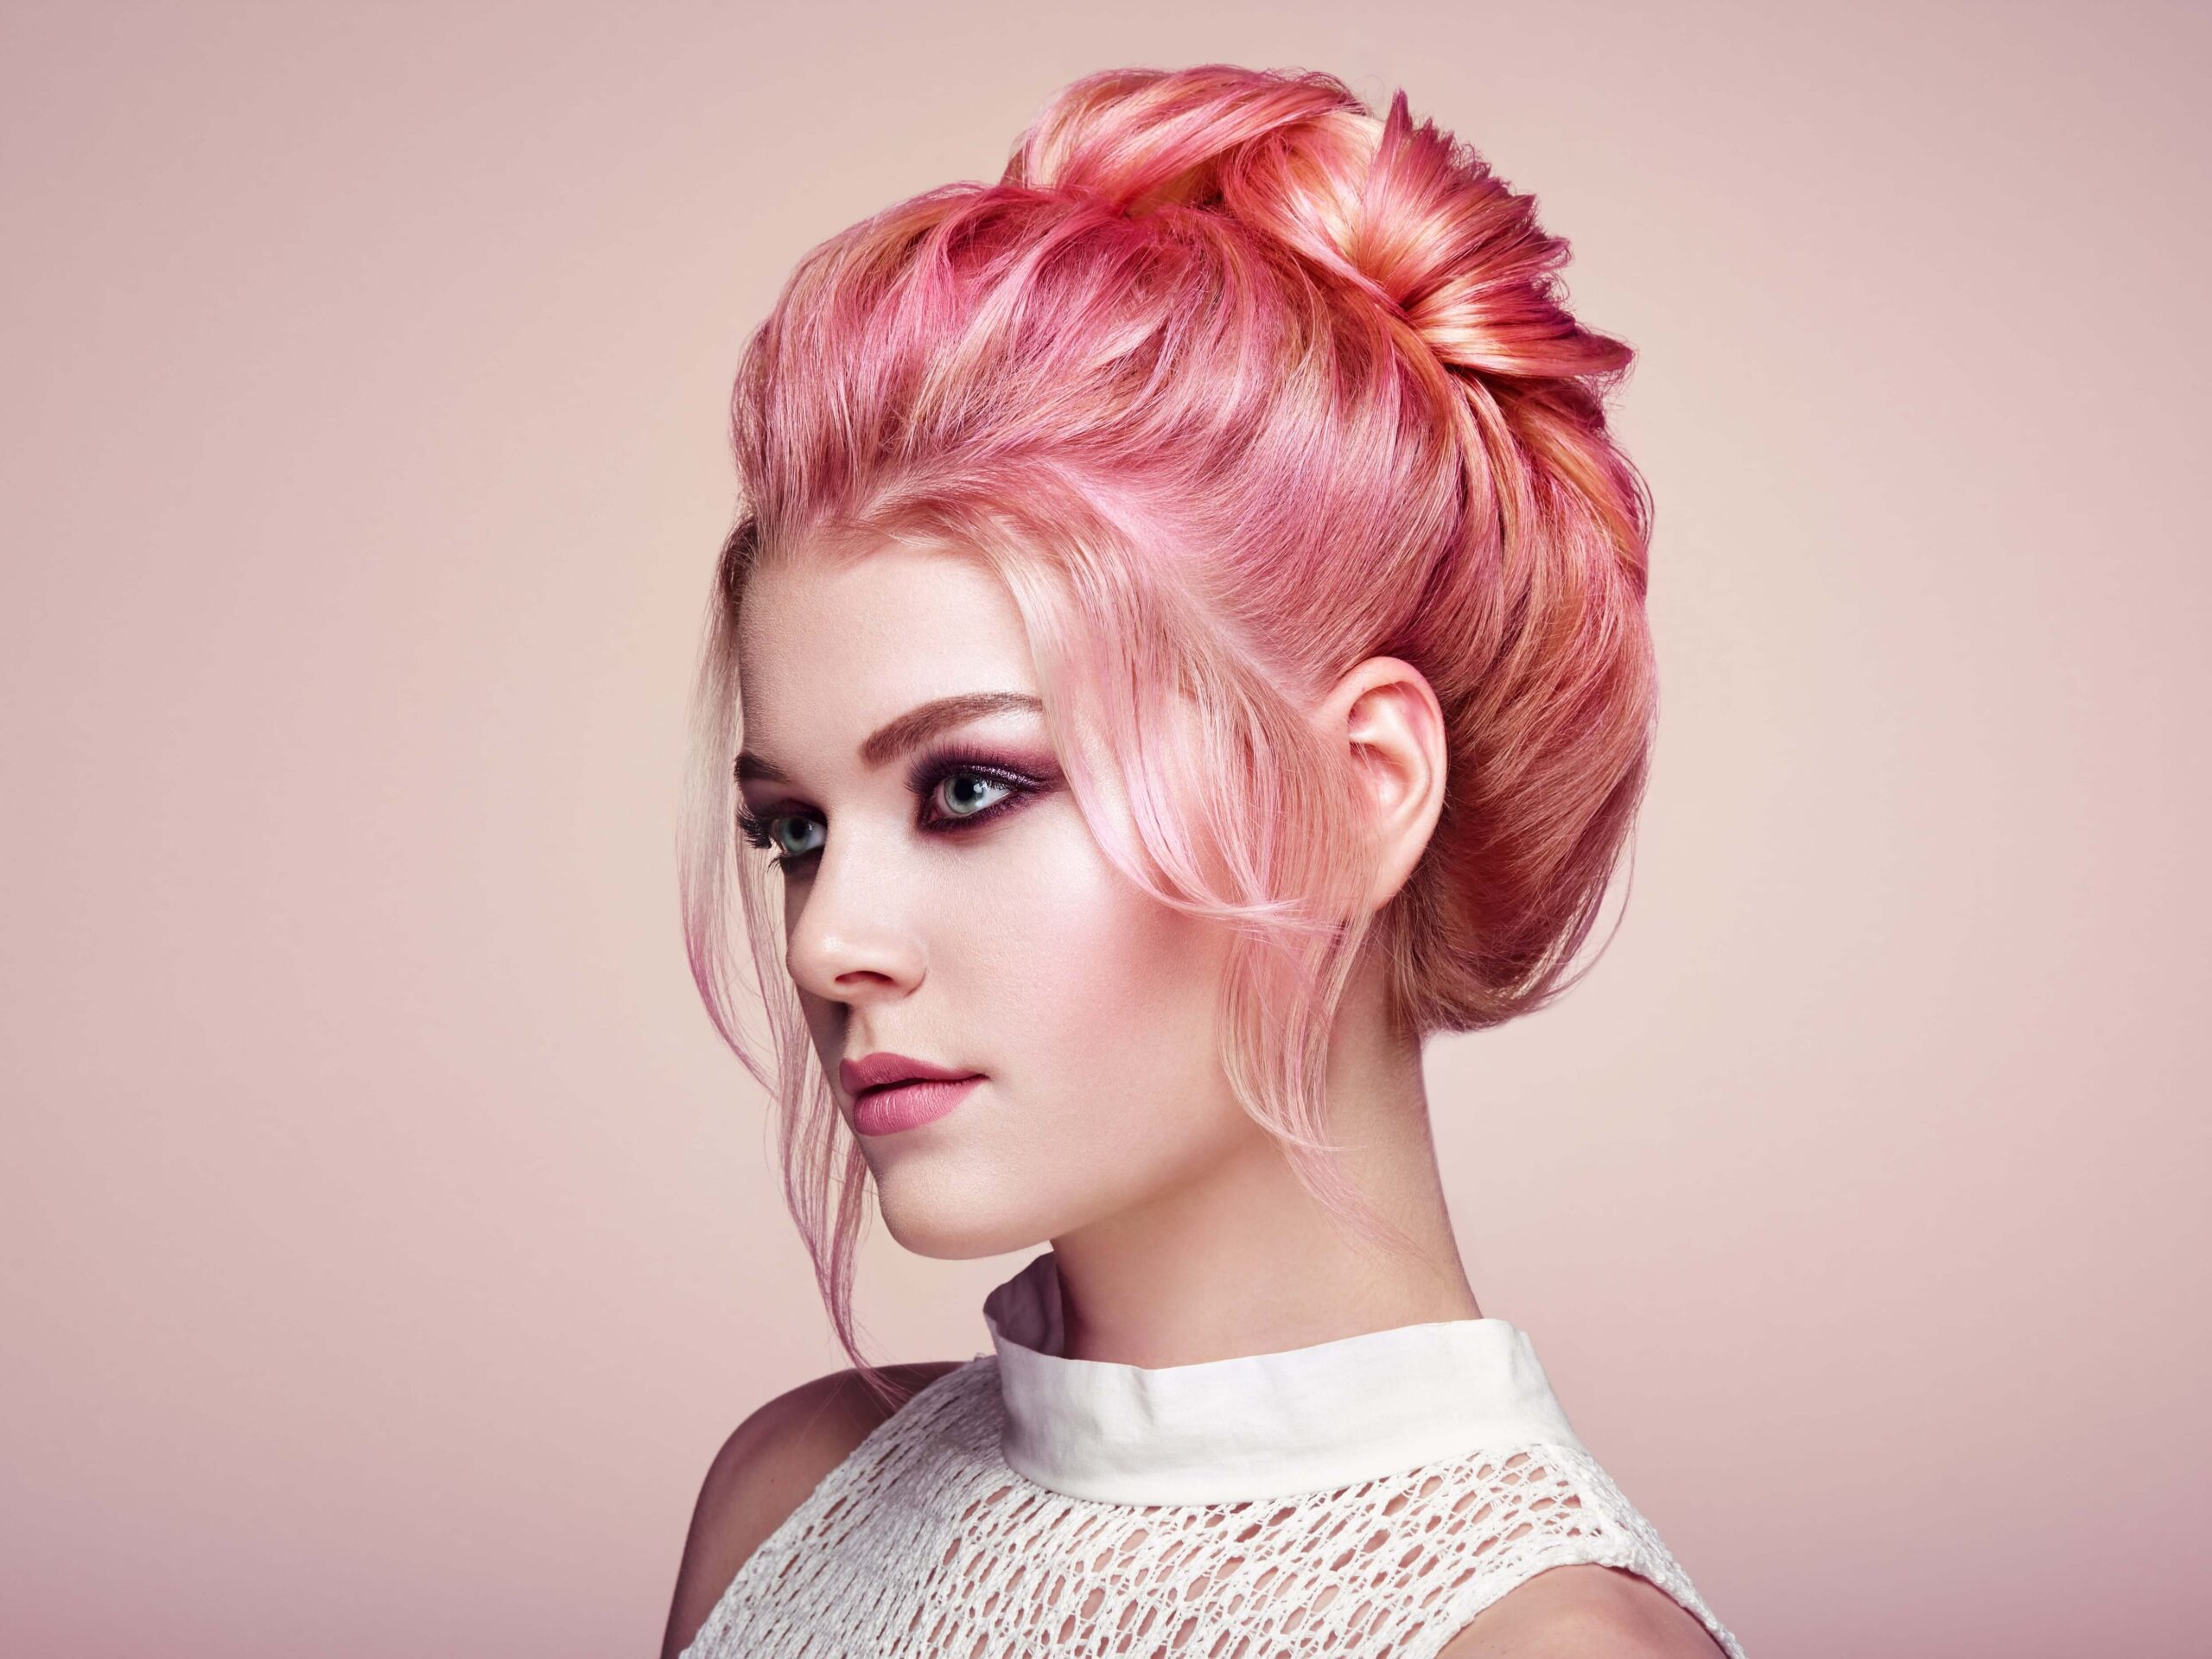 Glossary: Image of a woman with a pink updo.